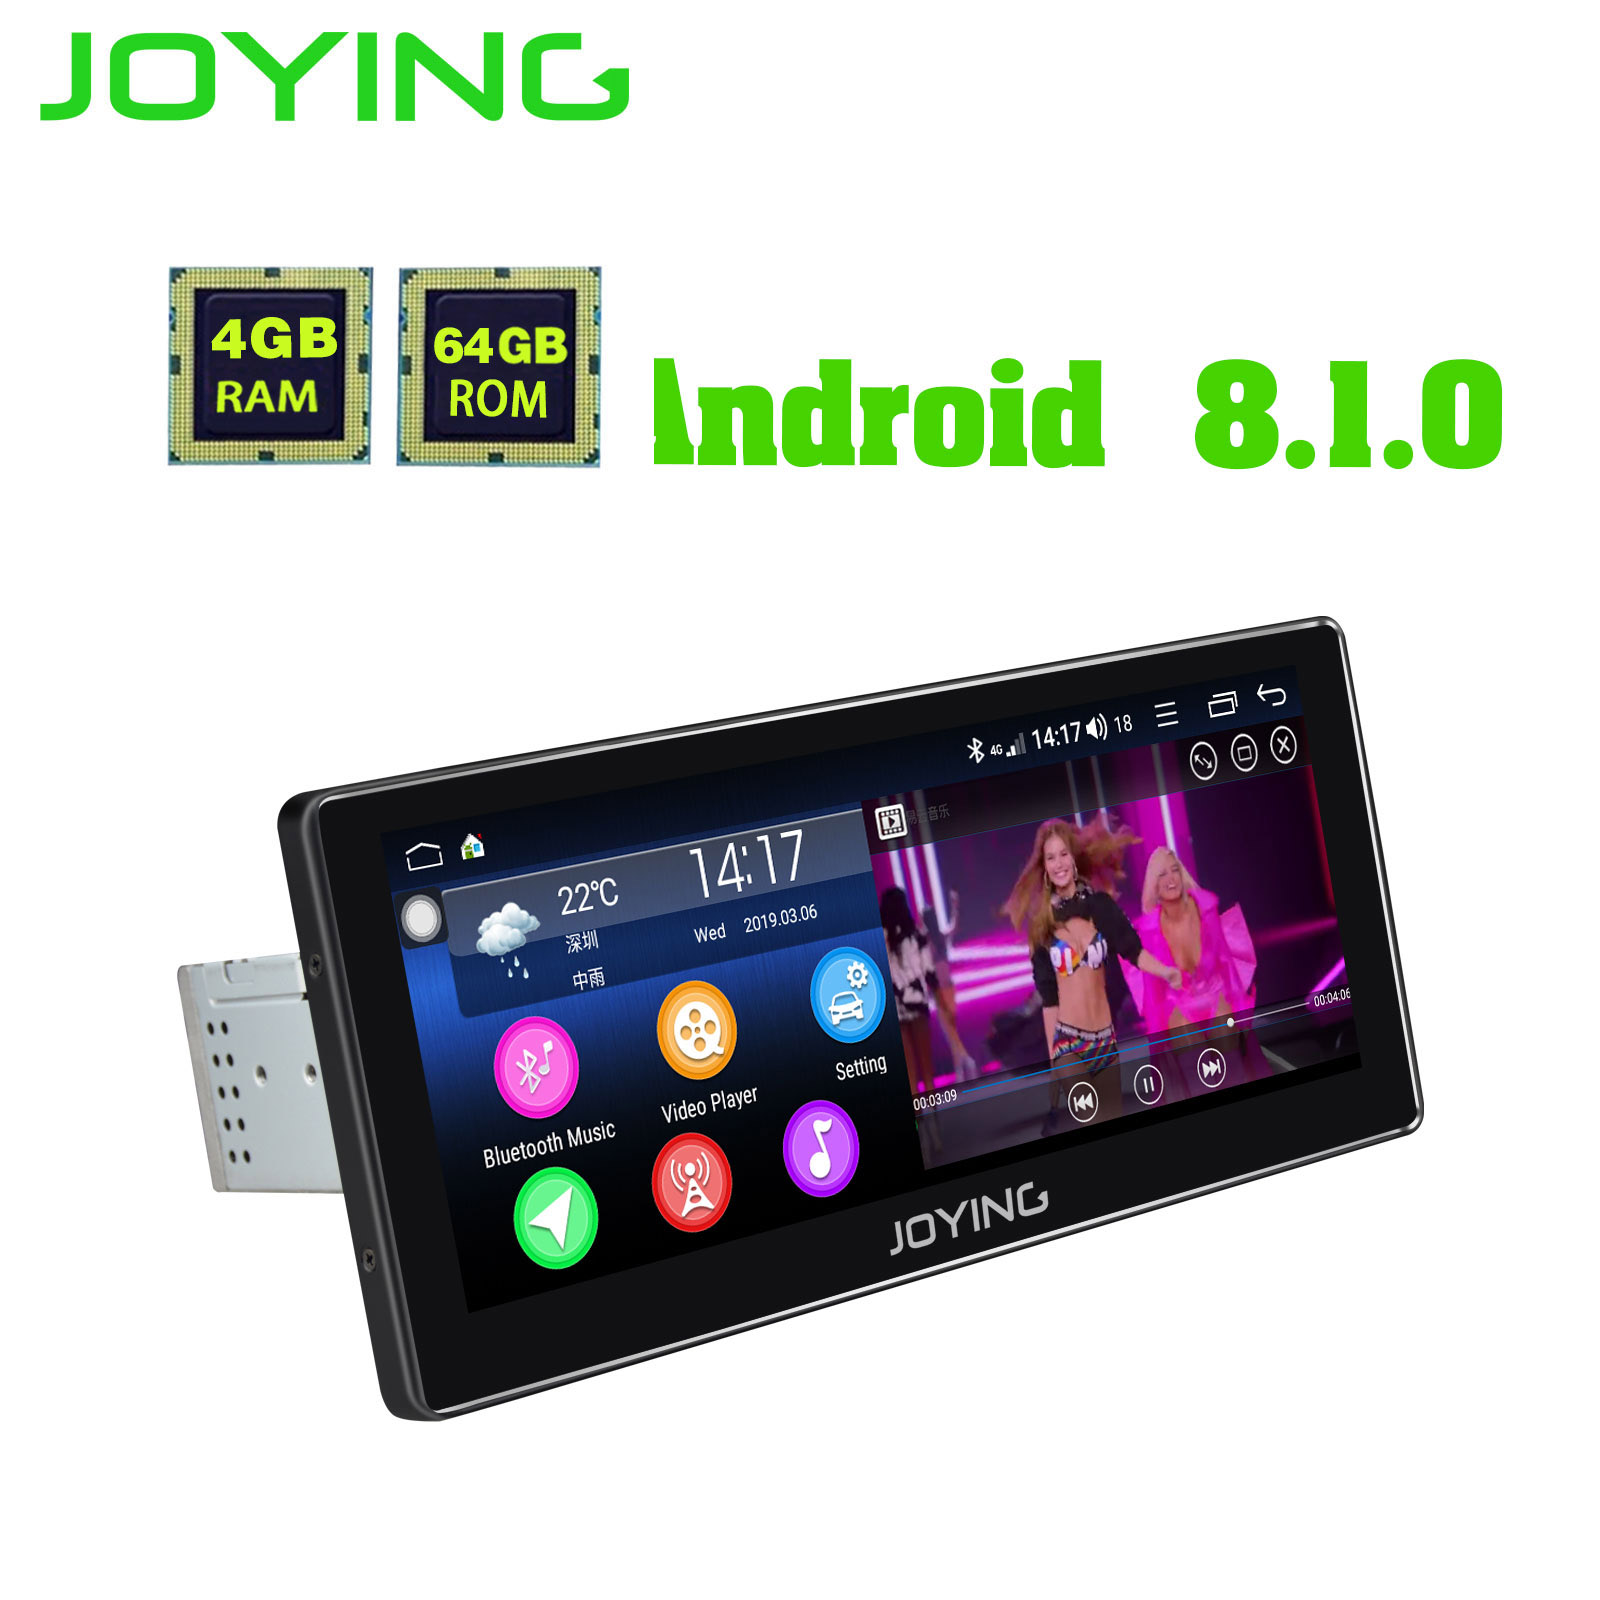 Android 8.1 single din car radio player GPS receiver 10.25 inch HD Screen 4GB RAM 64GB ROM stereo autoradio Support 4G Octa Core image